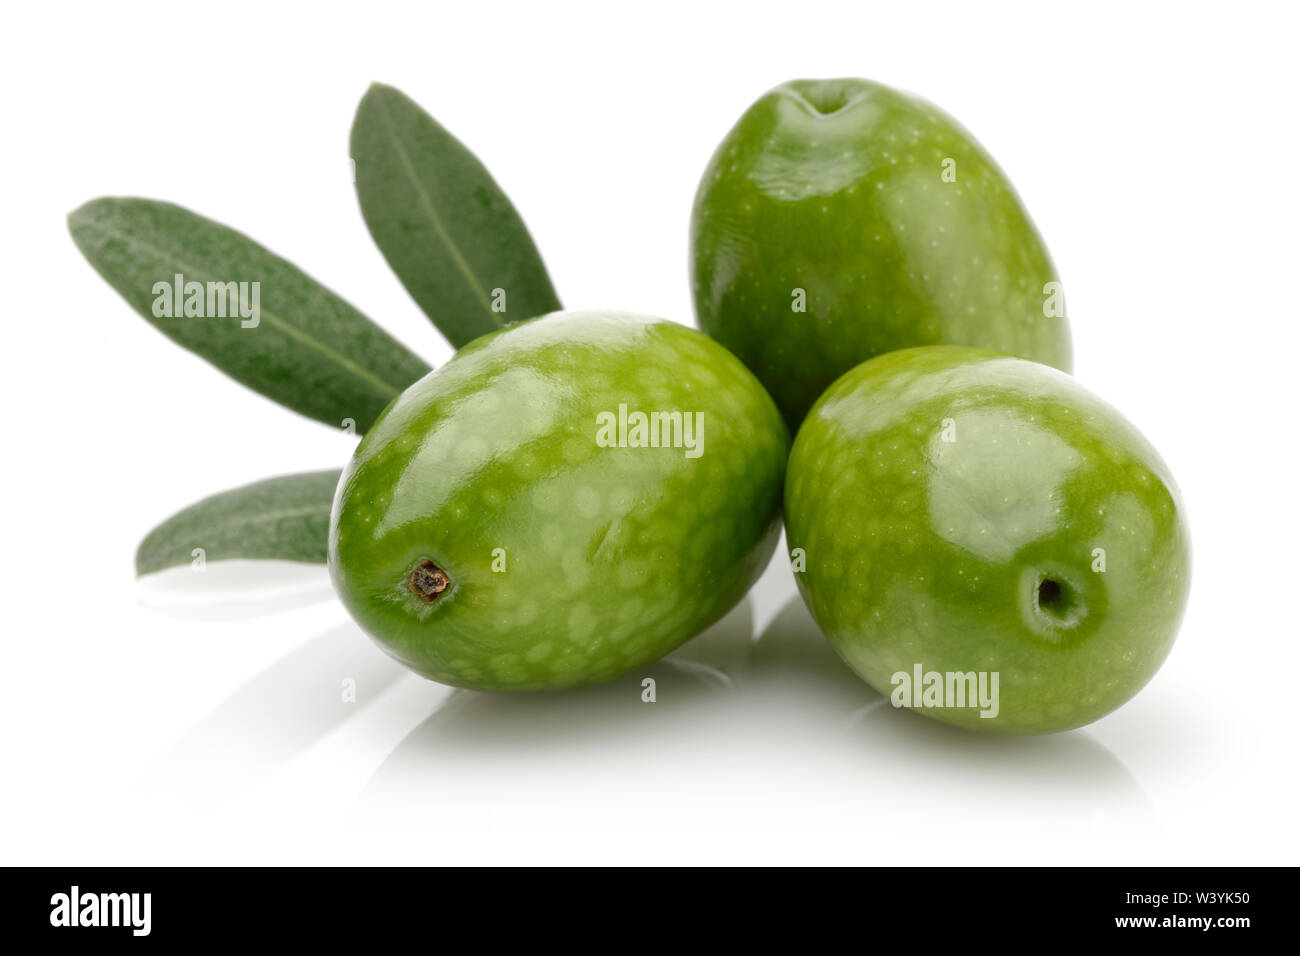 Green olives with leaves isolated on white background - Stock Image